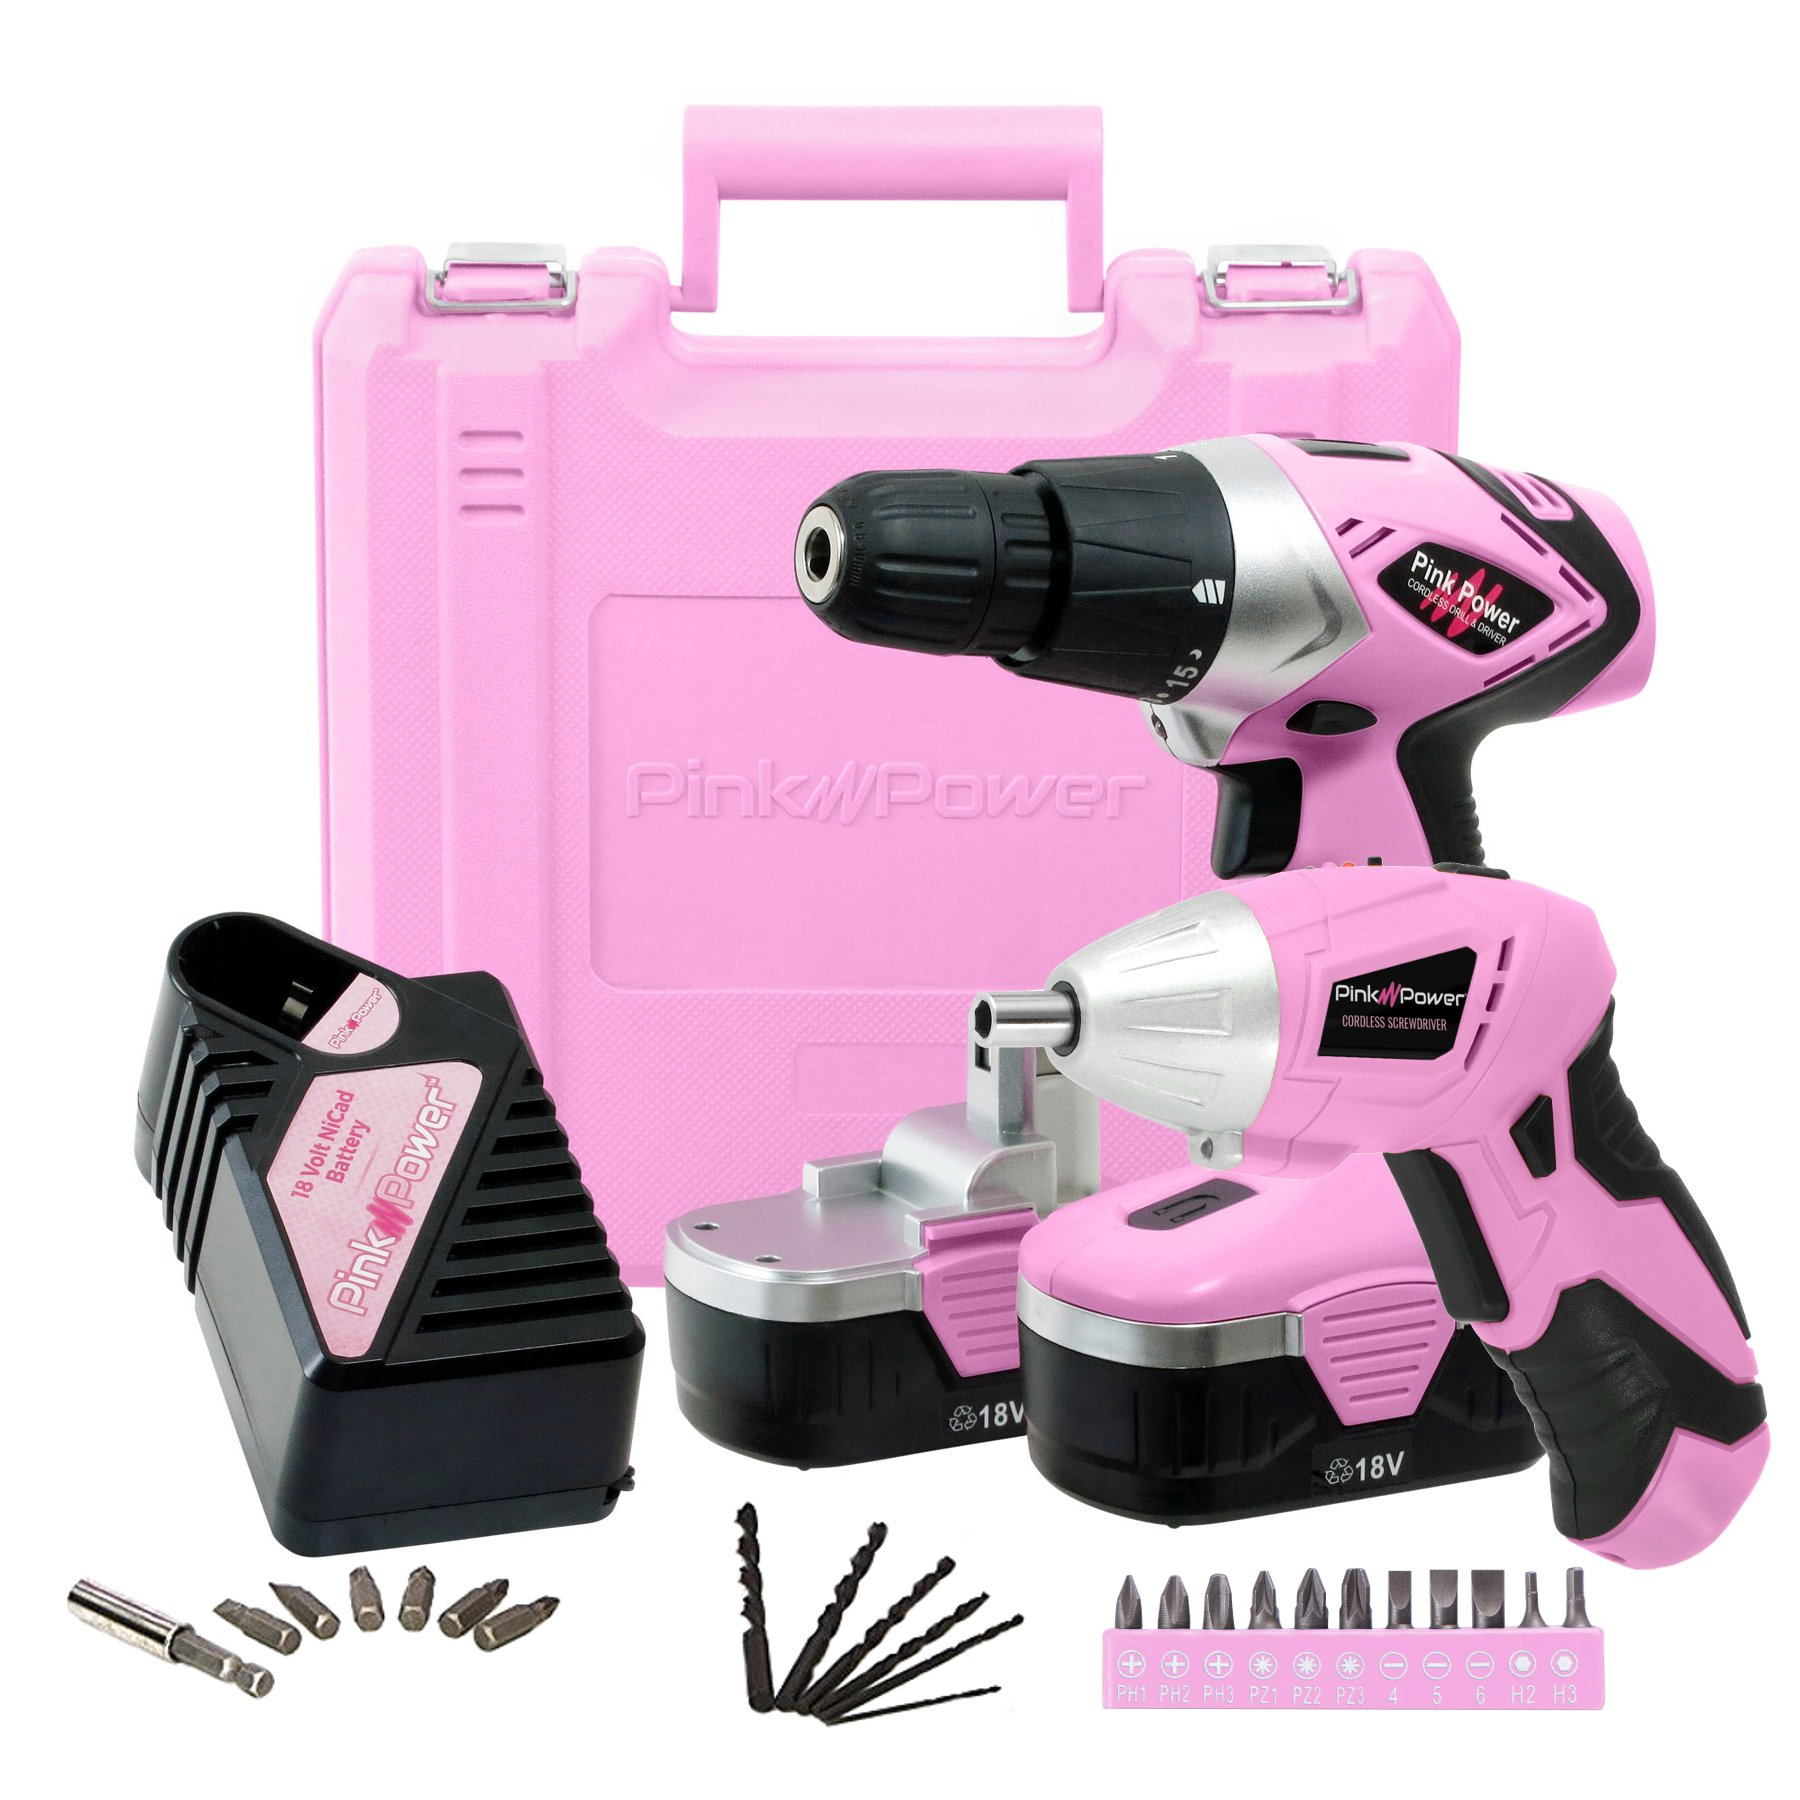 Pink Power PP1848K Electric Screwdriver Set and 18 Volt Cordless Drill Driver with Charger and Bit Set